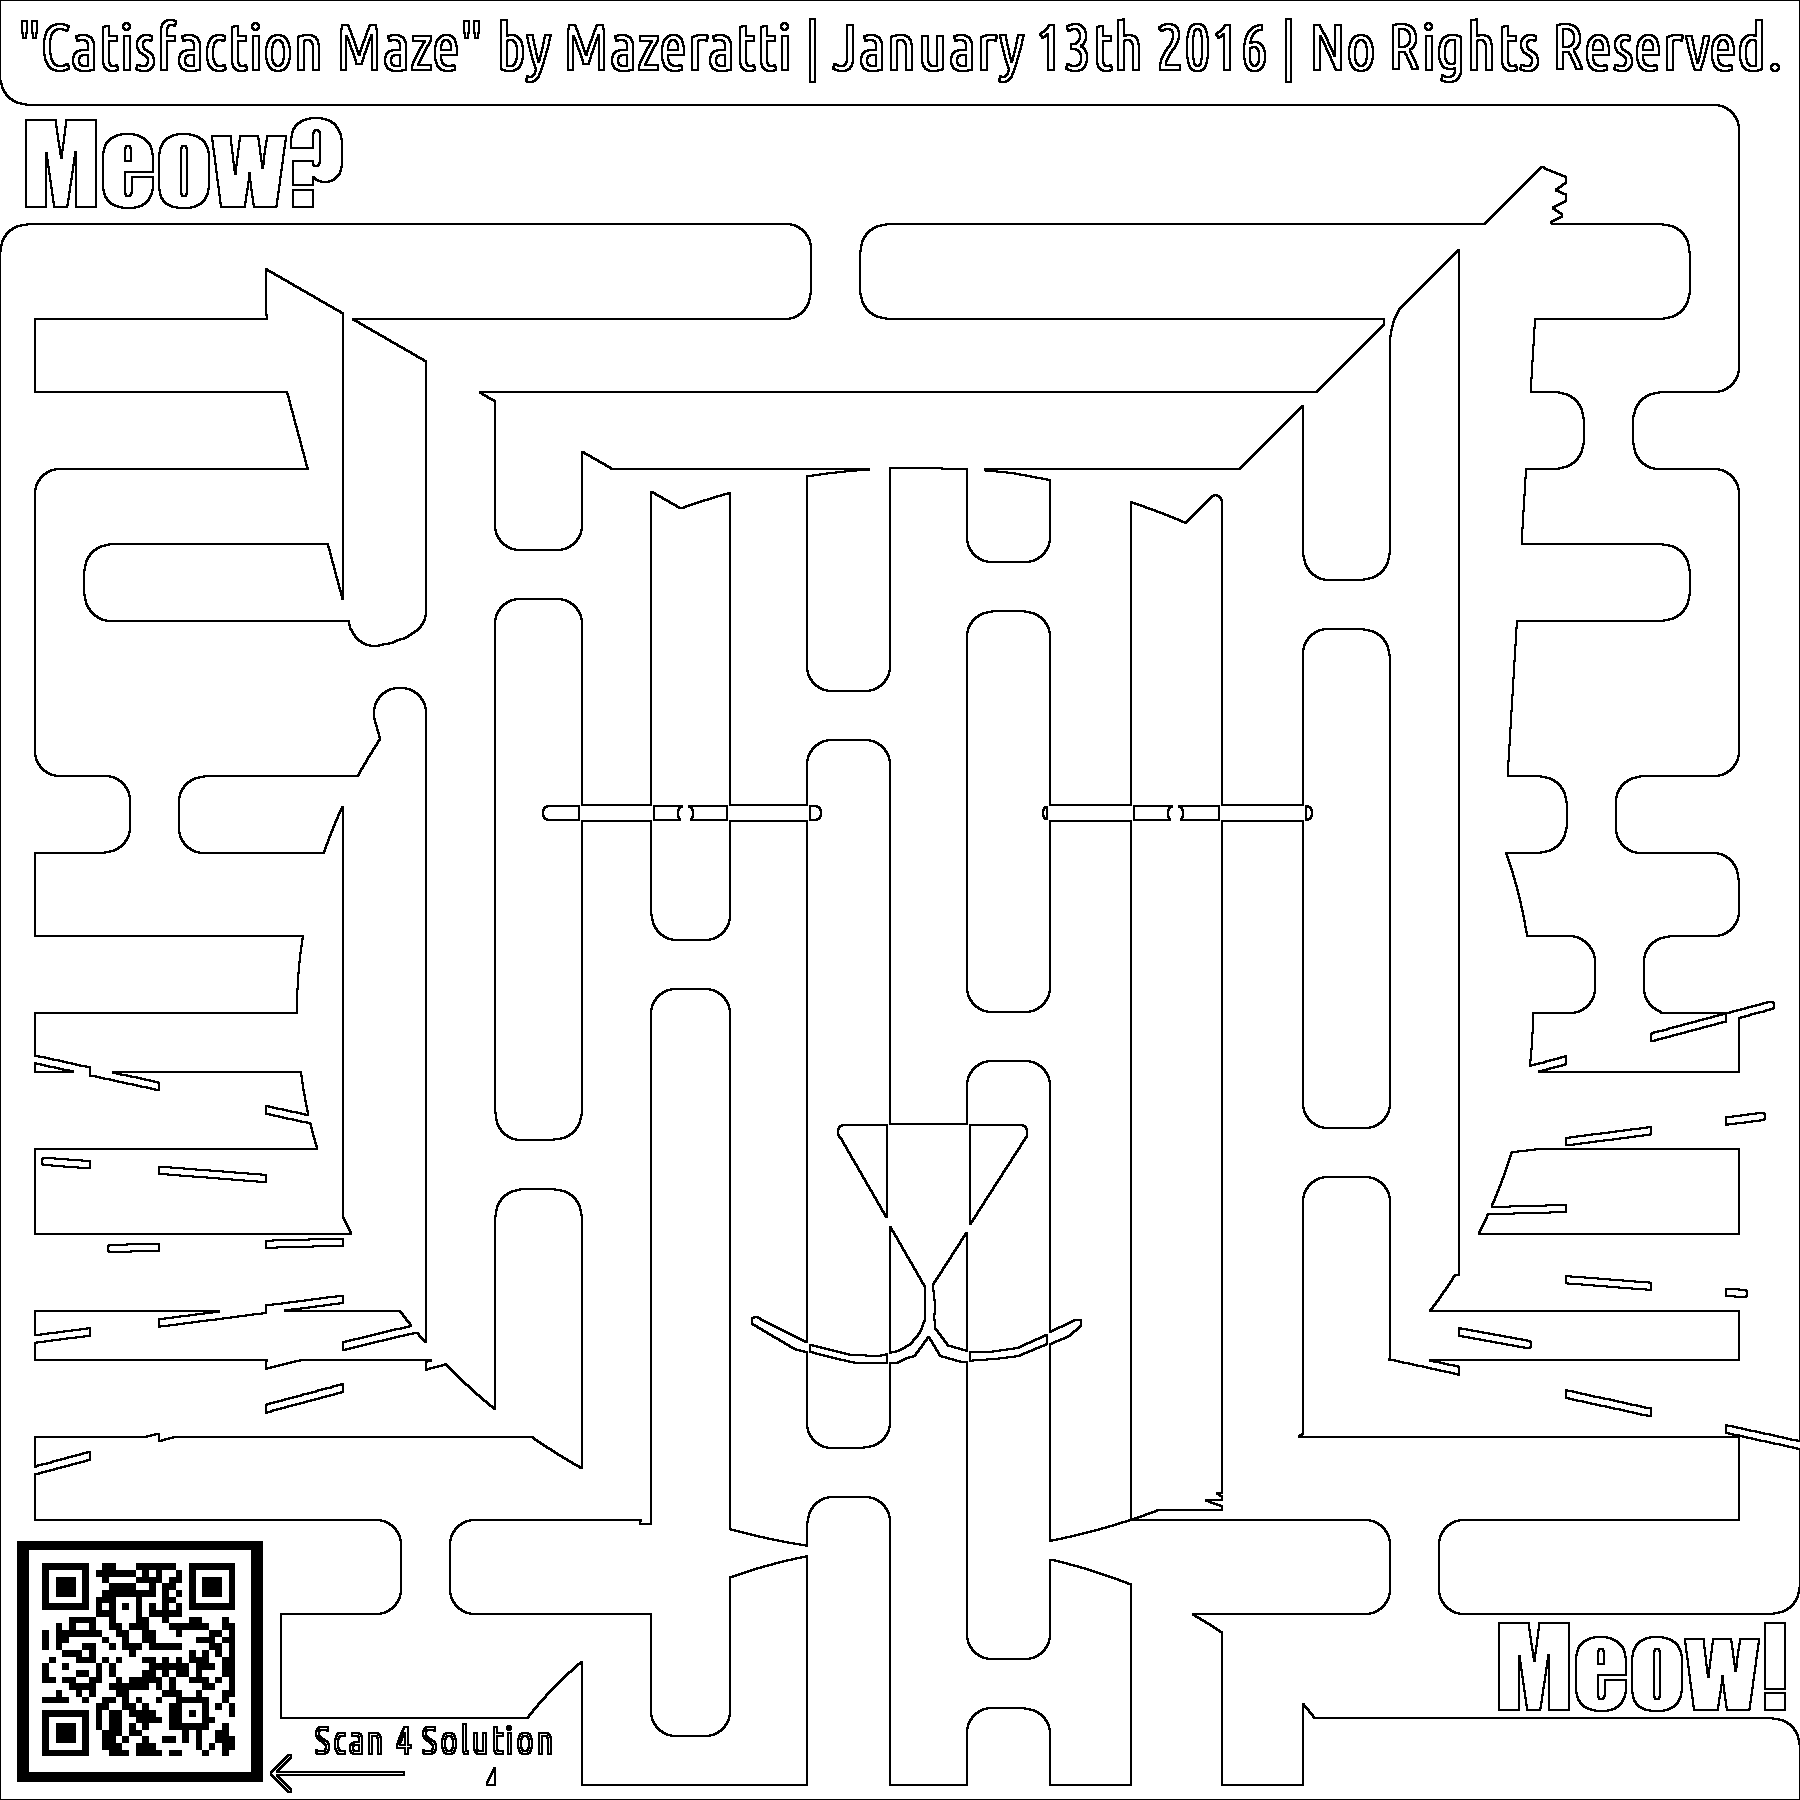 Free Coloring for Adults catisfaction maze